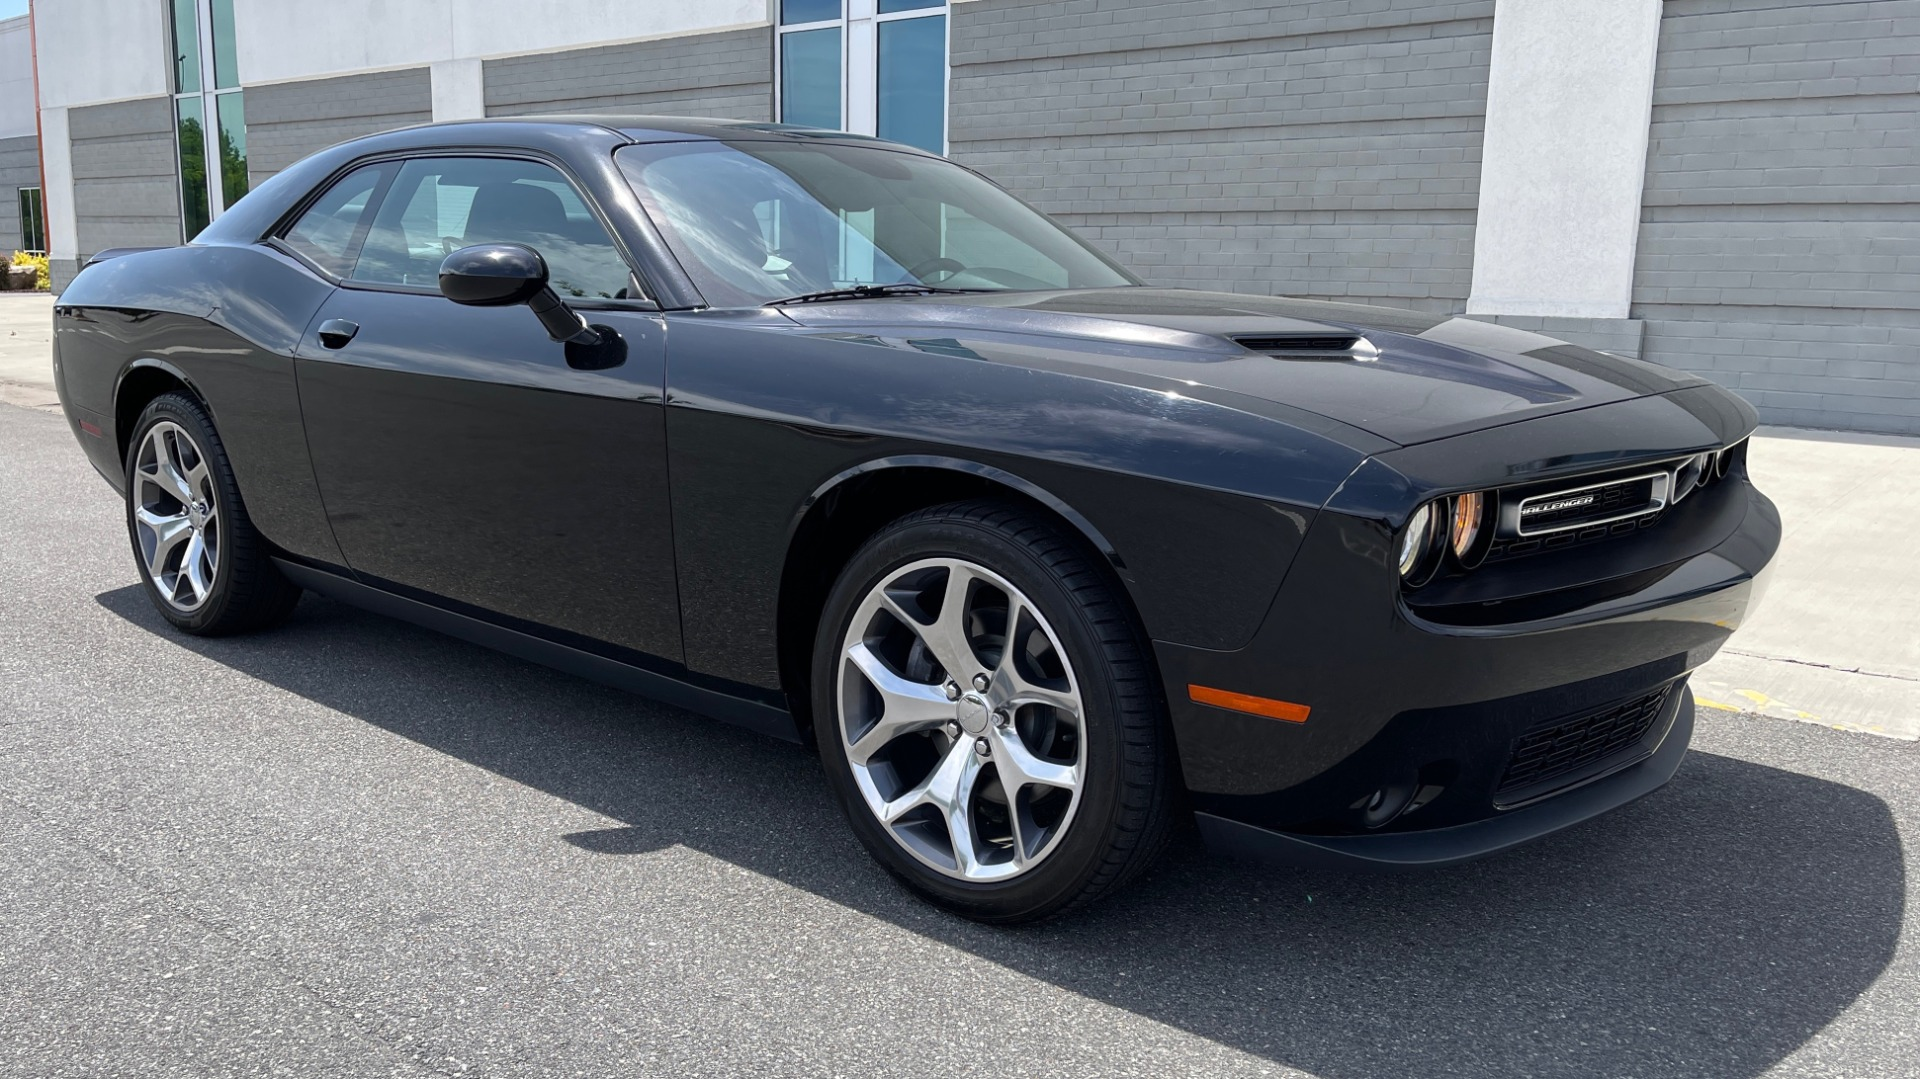 Used 2015 Dodge CHALLENGER SXT PLUS COUPE / 3.6L V6 / 8-SPD AUTO / NAV / ALPINE / SUNROOF / REARVIEW for sale Sold at Formula Imports in Charlotte NC 28227 3